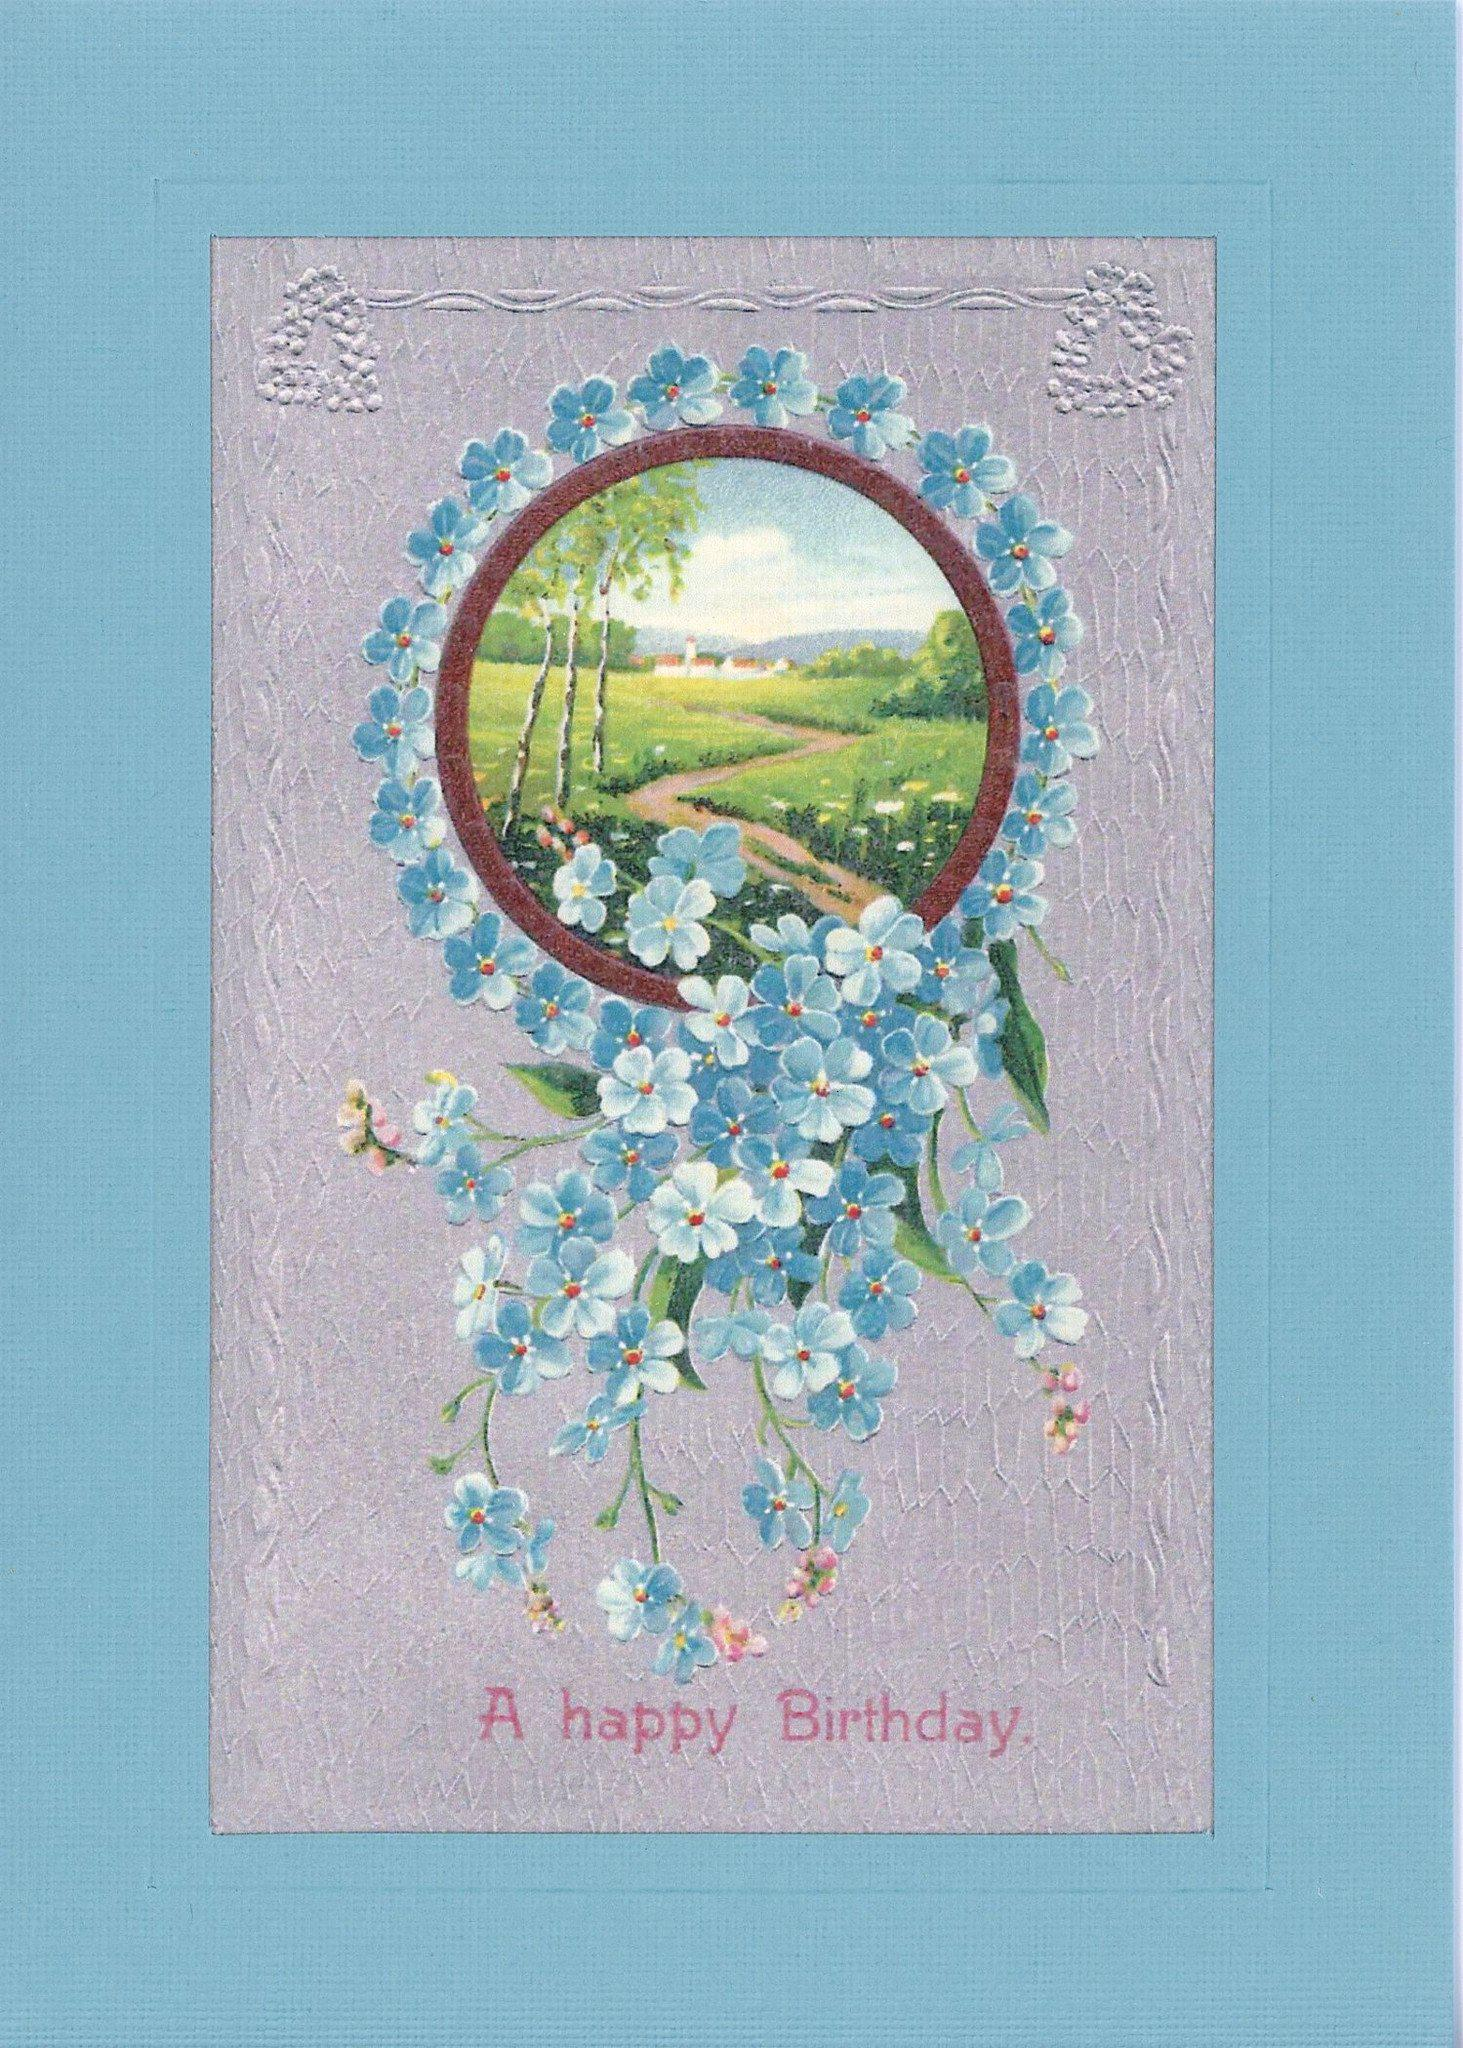 A Happy Birthday with flowers-Greetings from the Past-Plymouth Cards